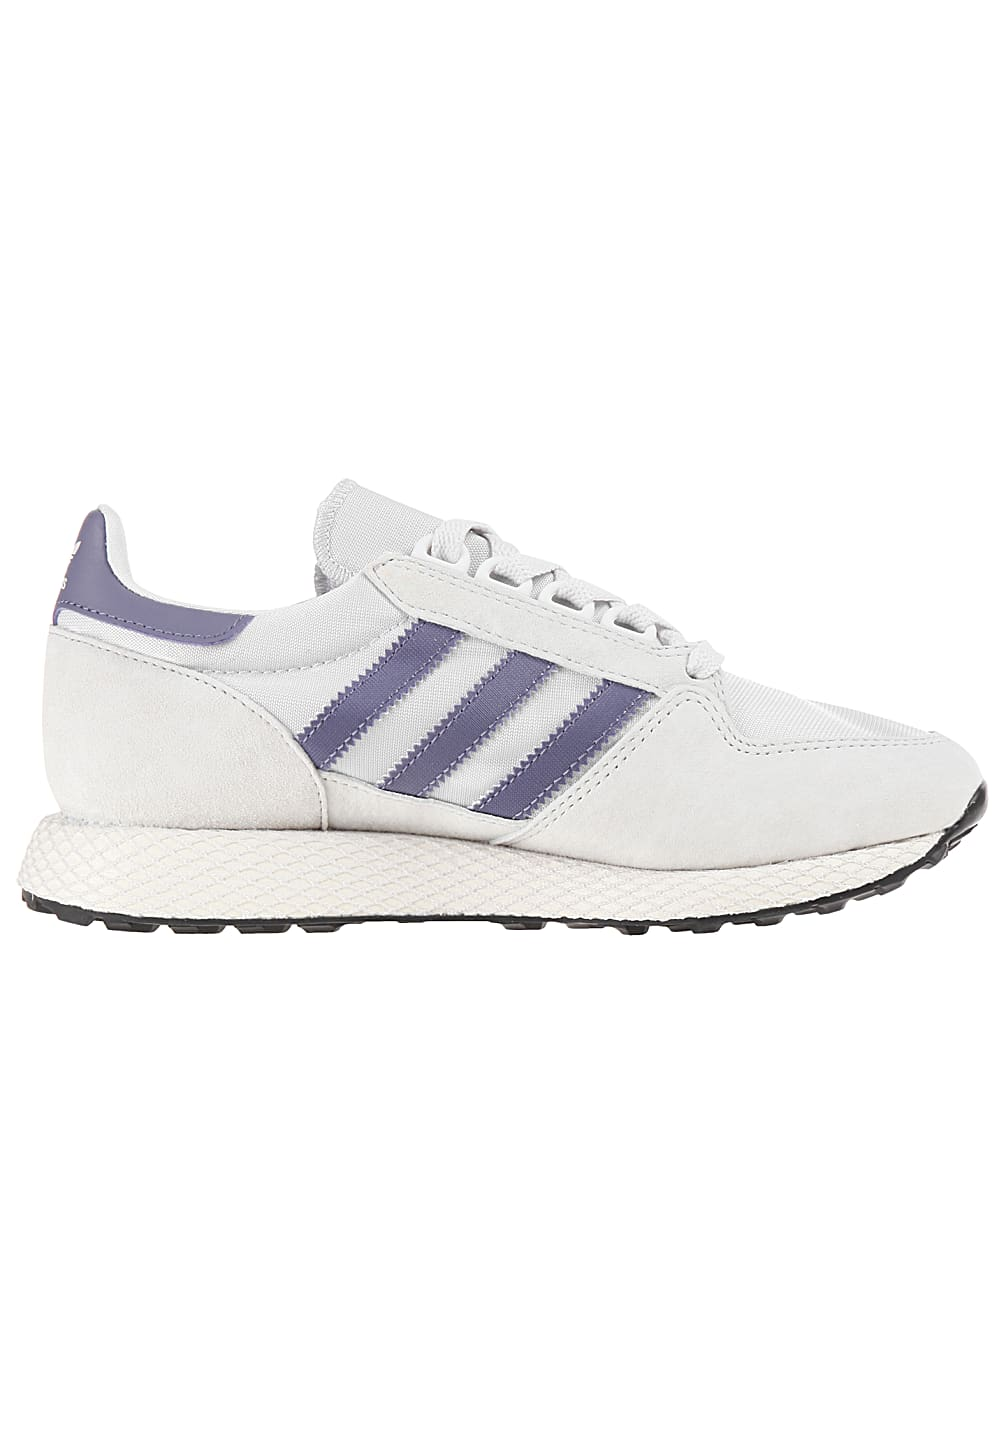 ADIDAS ORIGINALS Forest Grove - Sneakers for Women - Beige